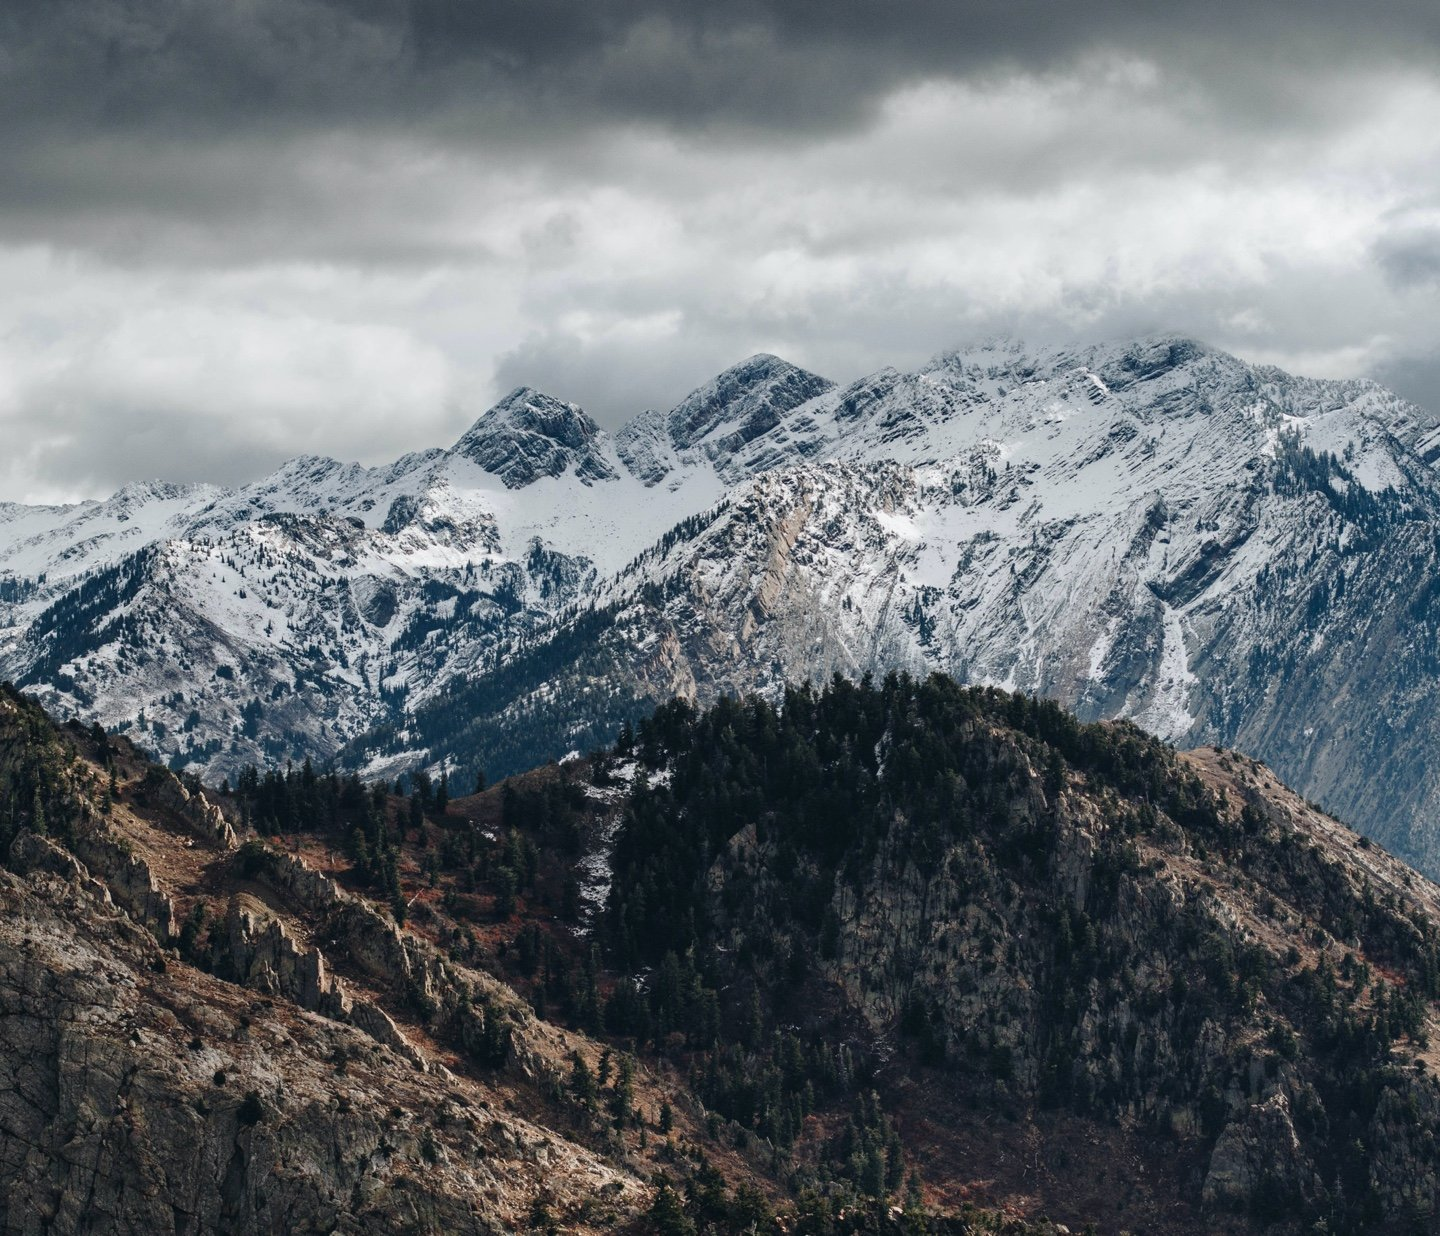 Snow-capped Utah Mountains